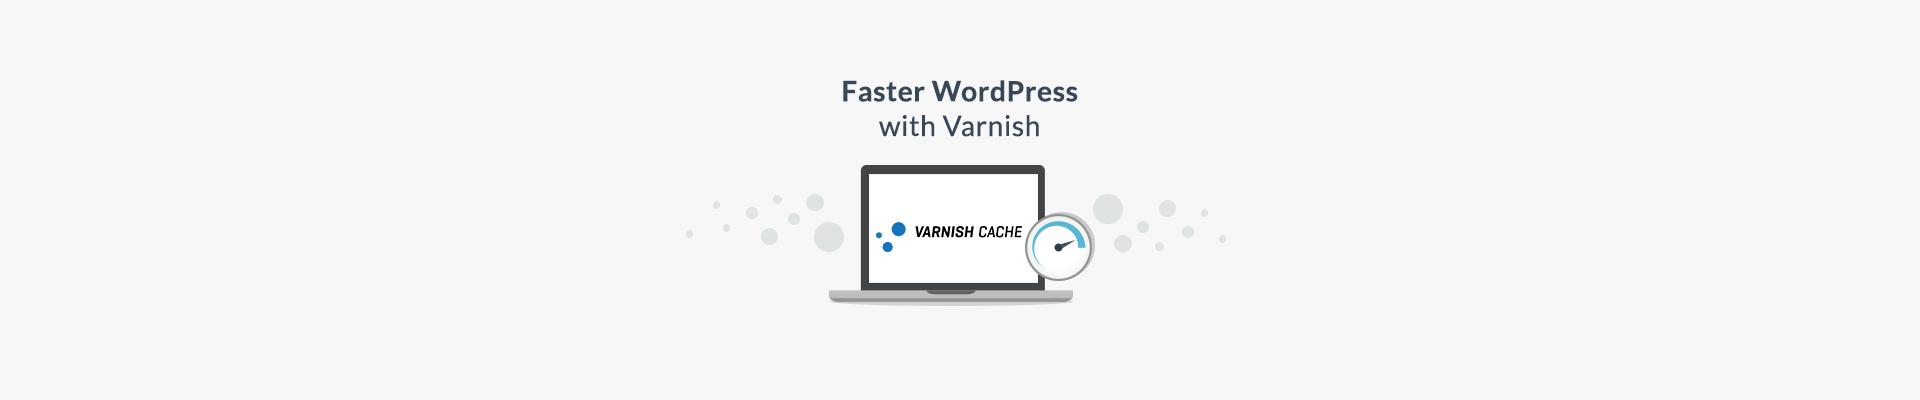 Varnish HTTP Cache plugin for Wordpress in a Docker container